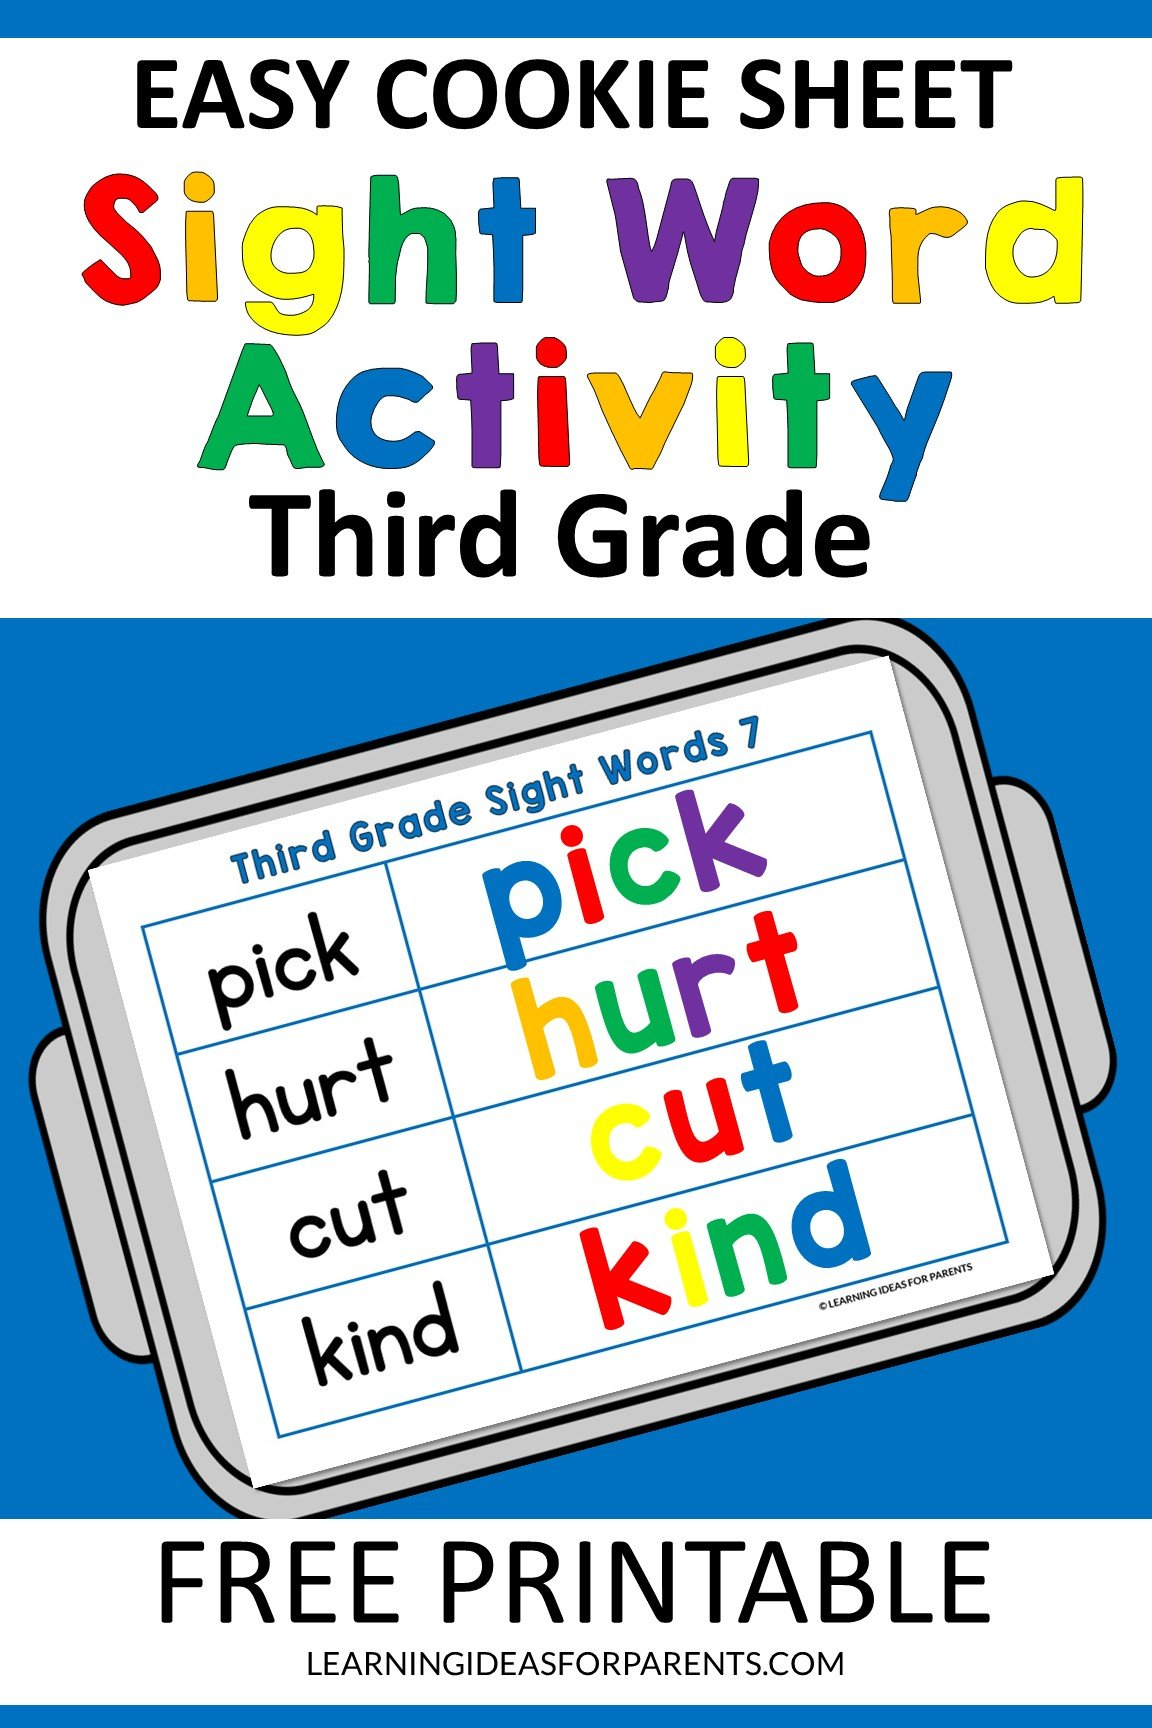 Free printable easy cookie sheet third grade sight word activity.